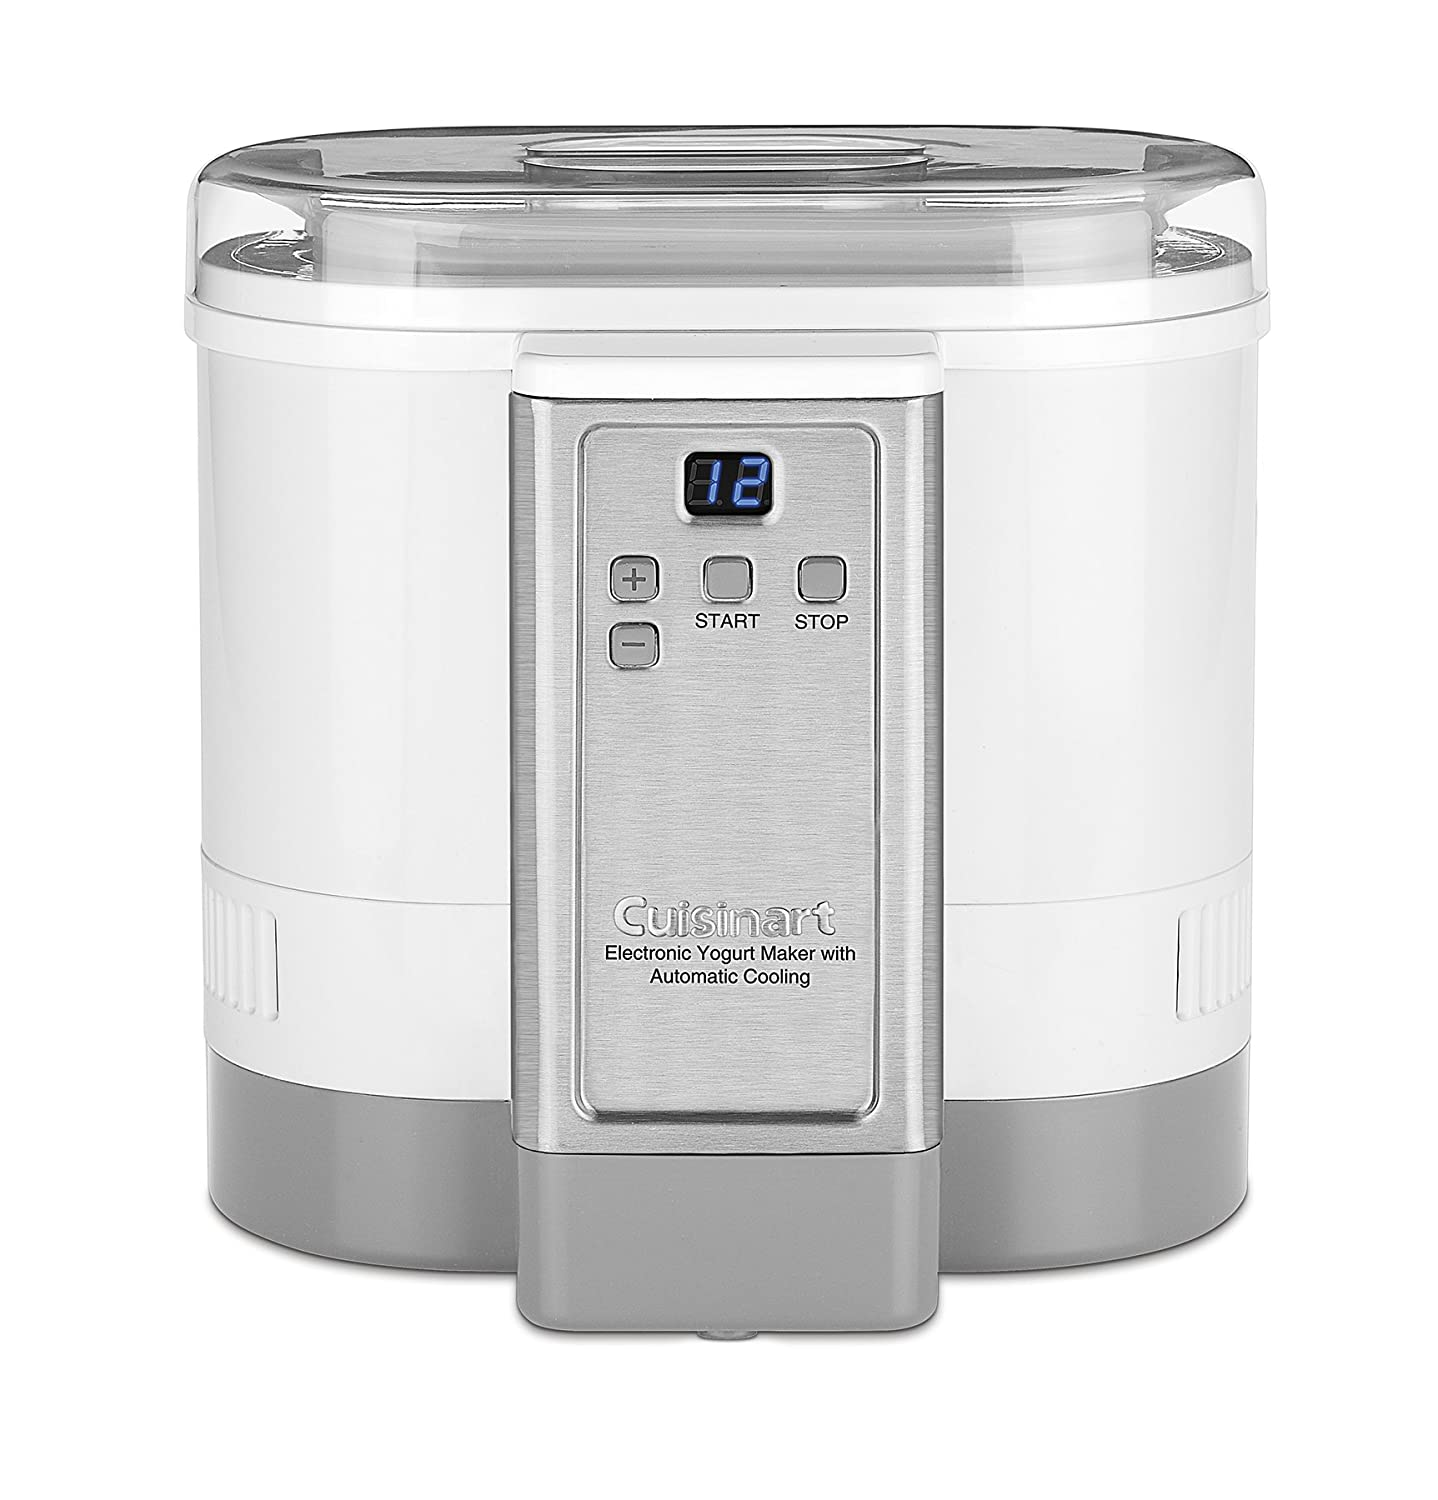 Cuisinart CYM-100 Electronic Yogurt Maker with Automatic Cooling White